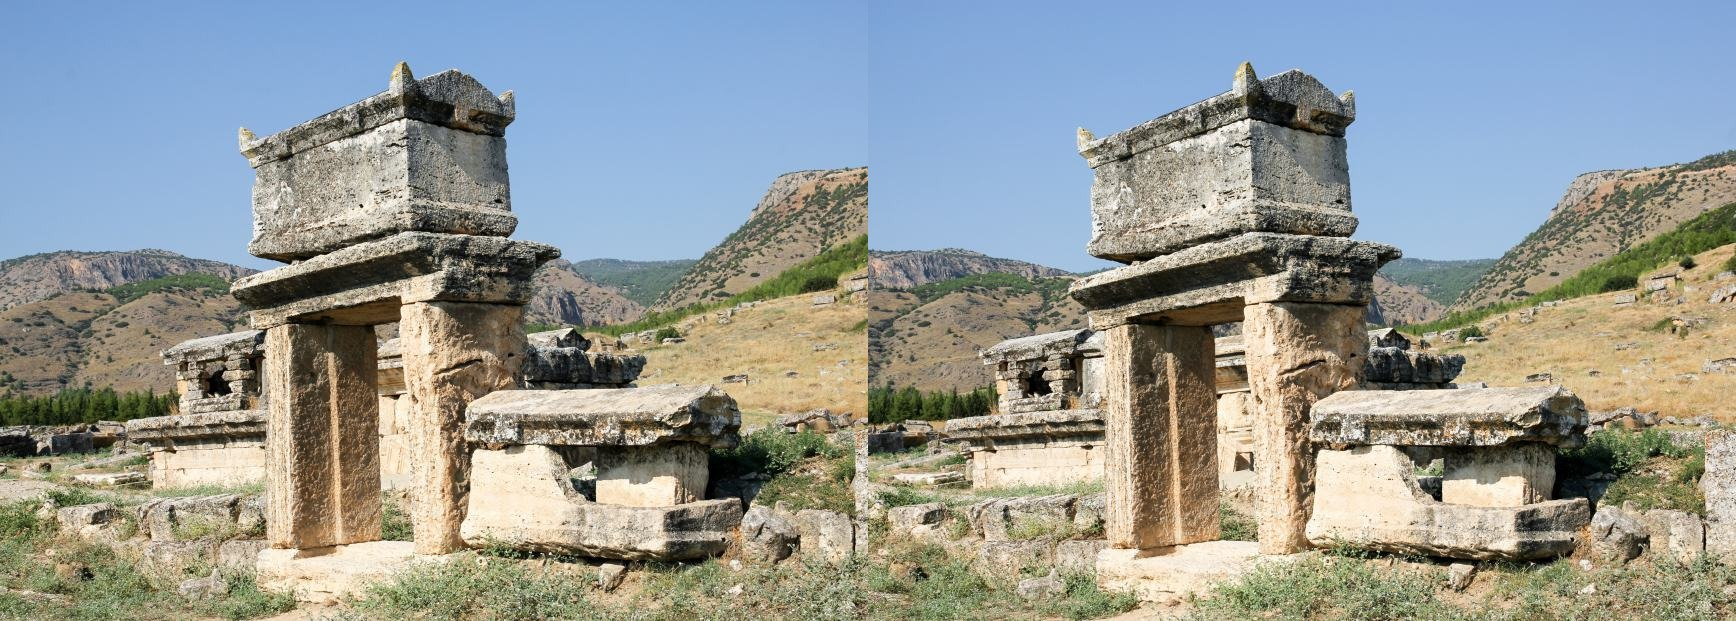 The ruins of Hierapolis